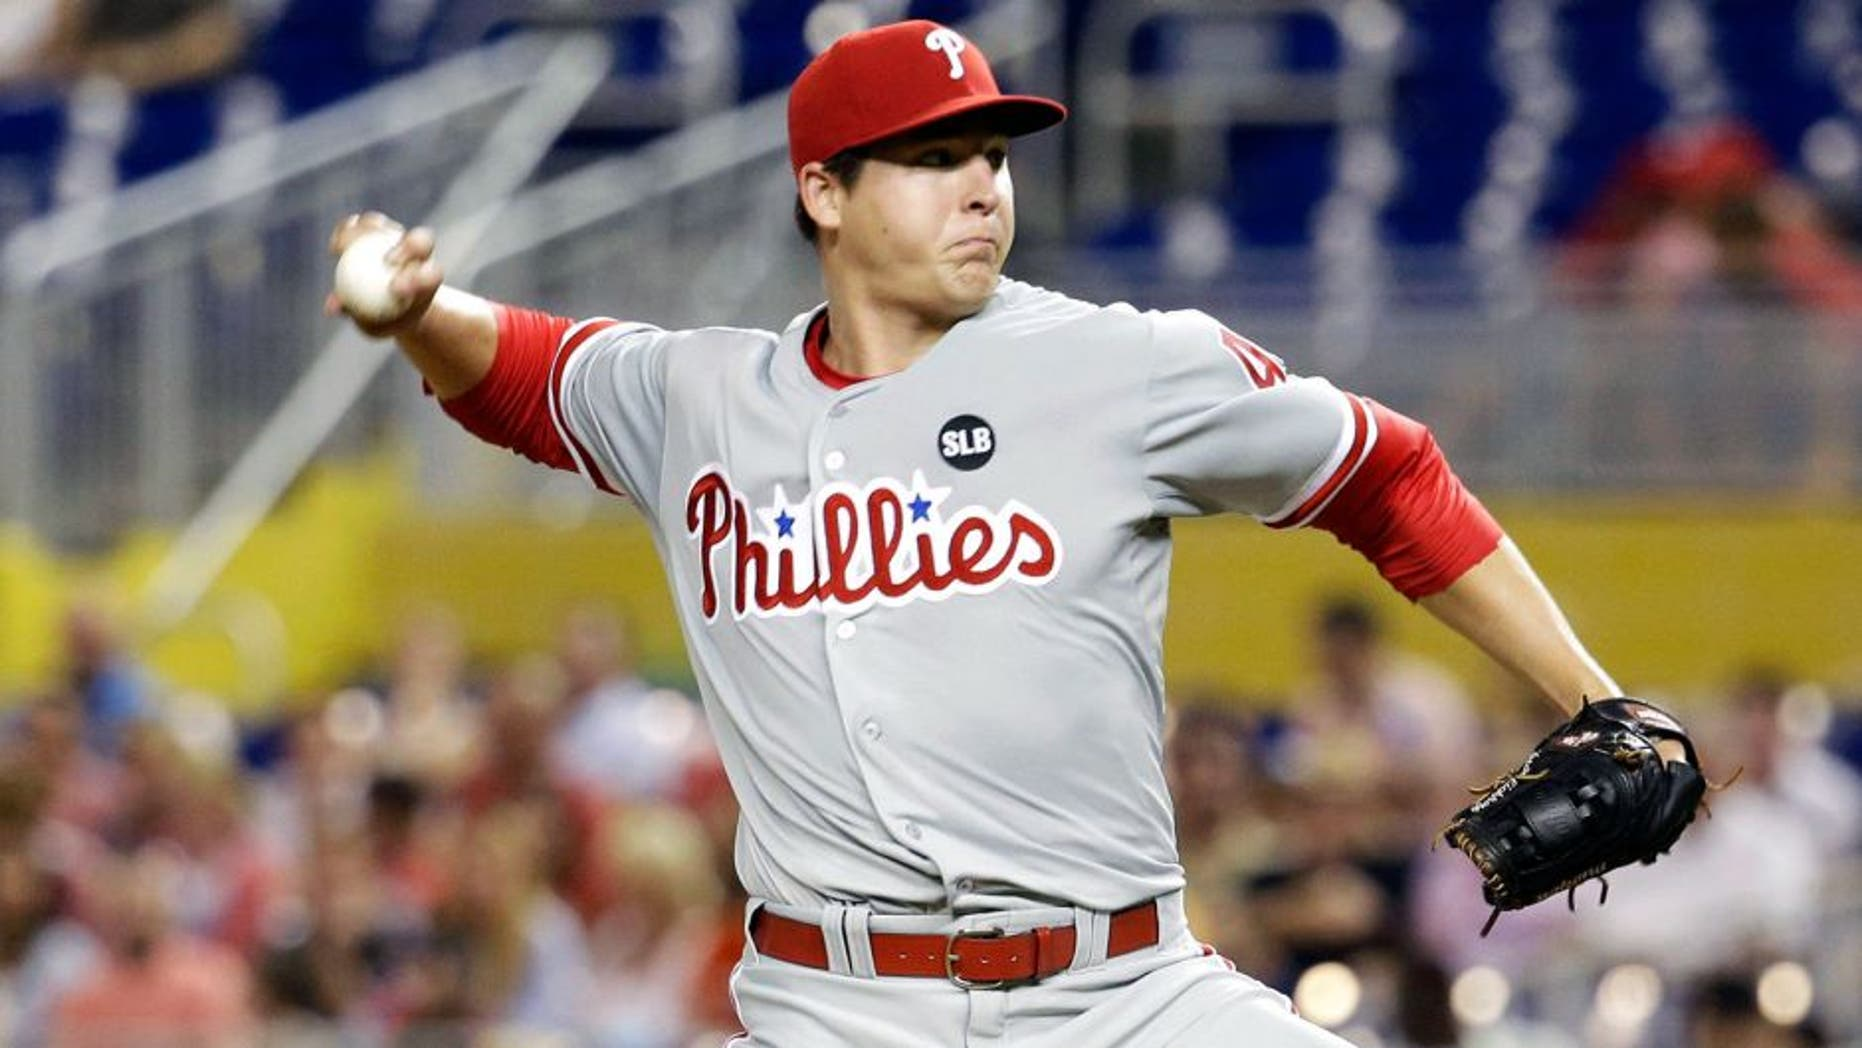 Philadelphia Phillies' starting pitcher Jerad Eickhoff throws in the first inning of a baseball game against the Miami Marlins, Friday, Aug. 21, 2015, in Miami. (AP Photo/Lynne Sladky)